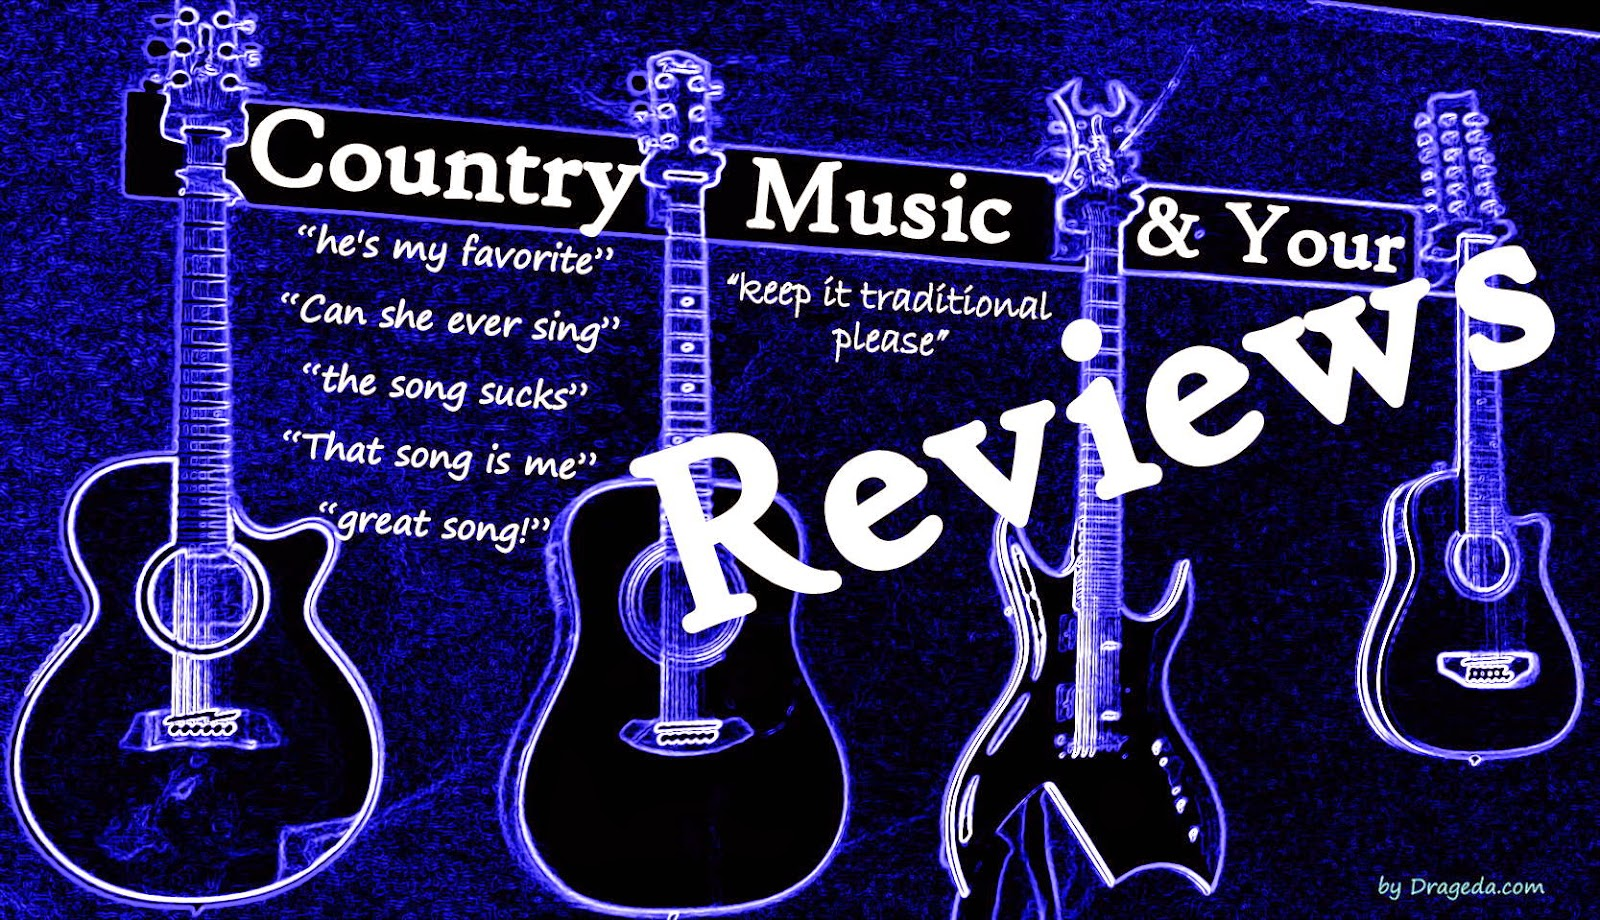 Country Music Fan Reviews